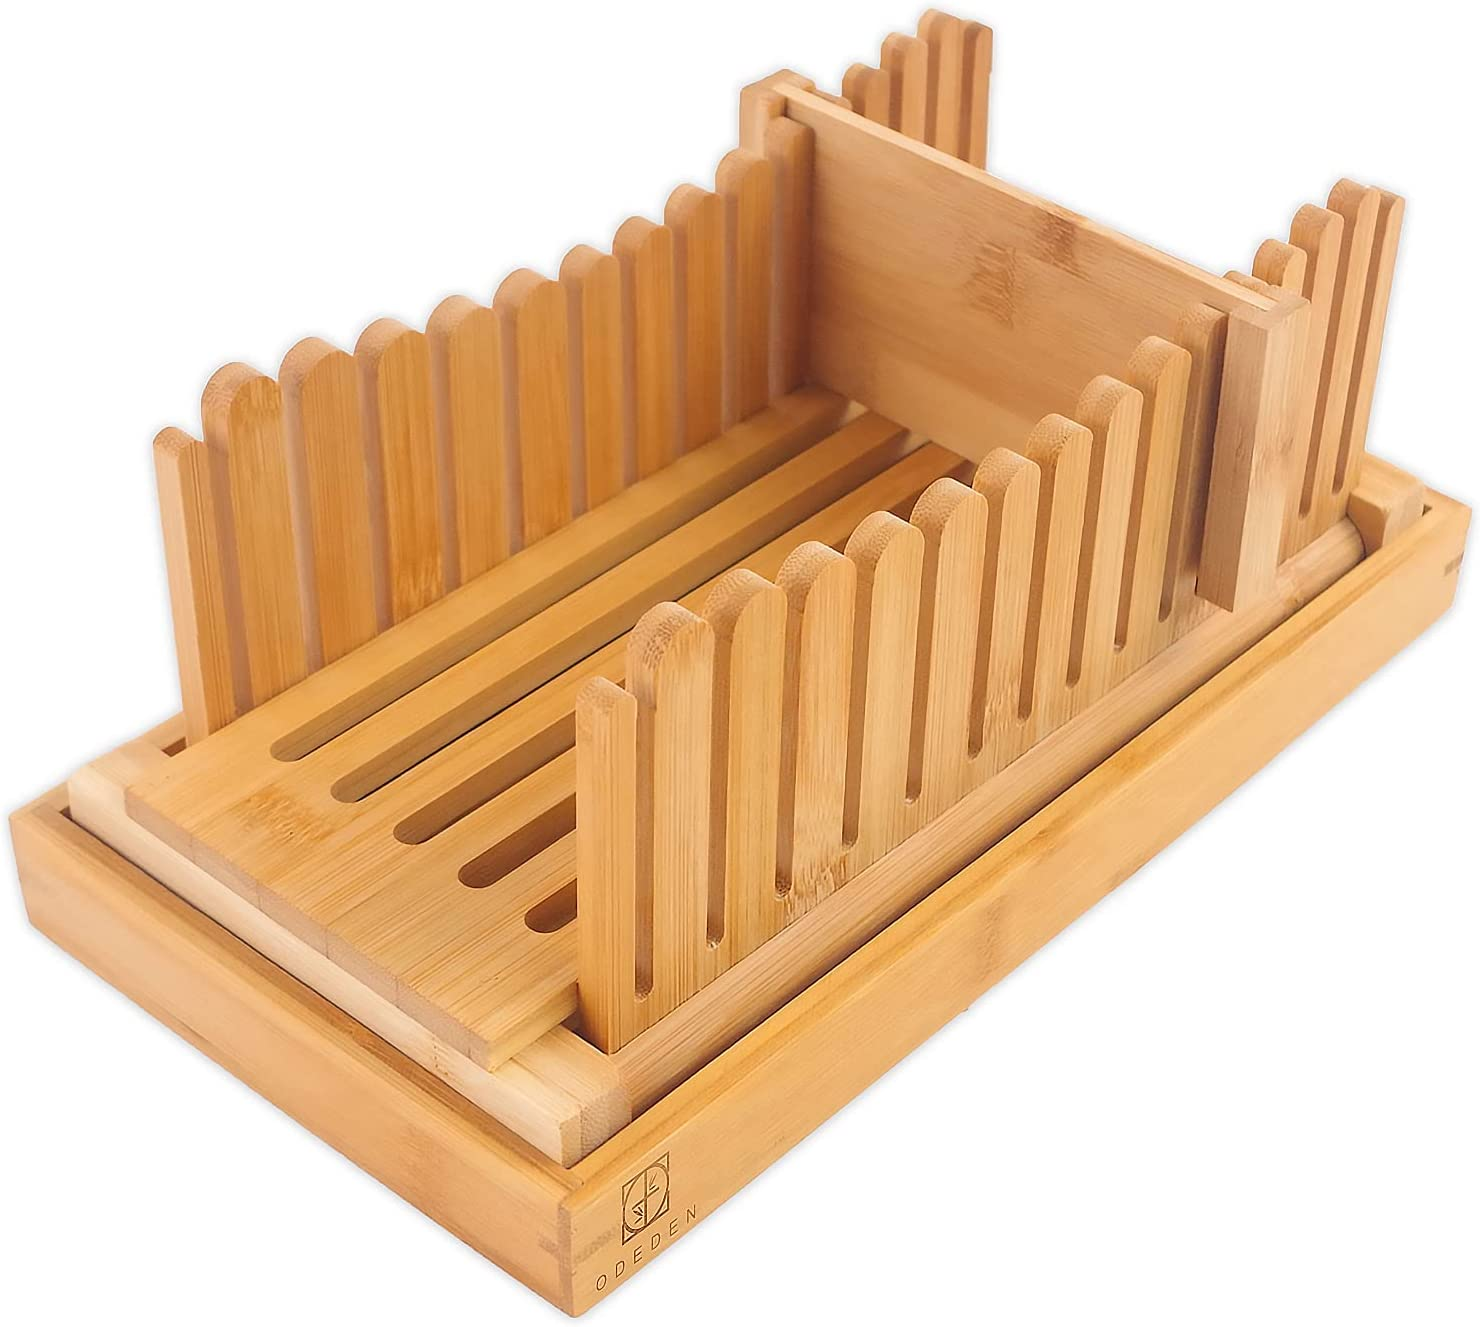 Attractive Bamboo Bread Slicers for Homemade Bread Loaf,Adjustab